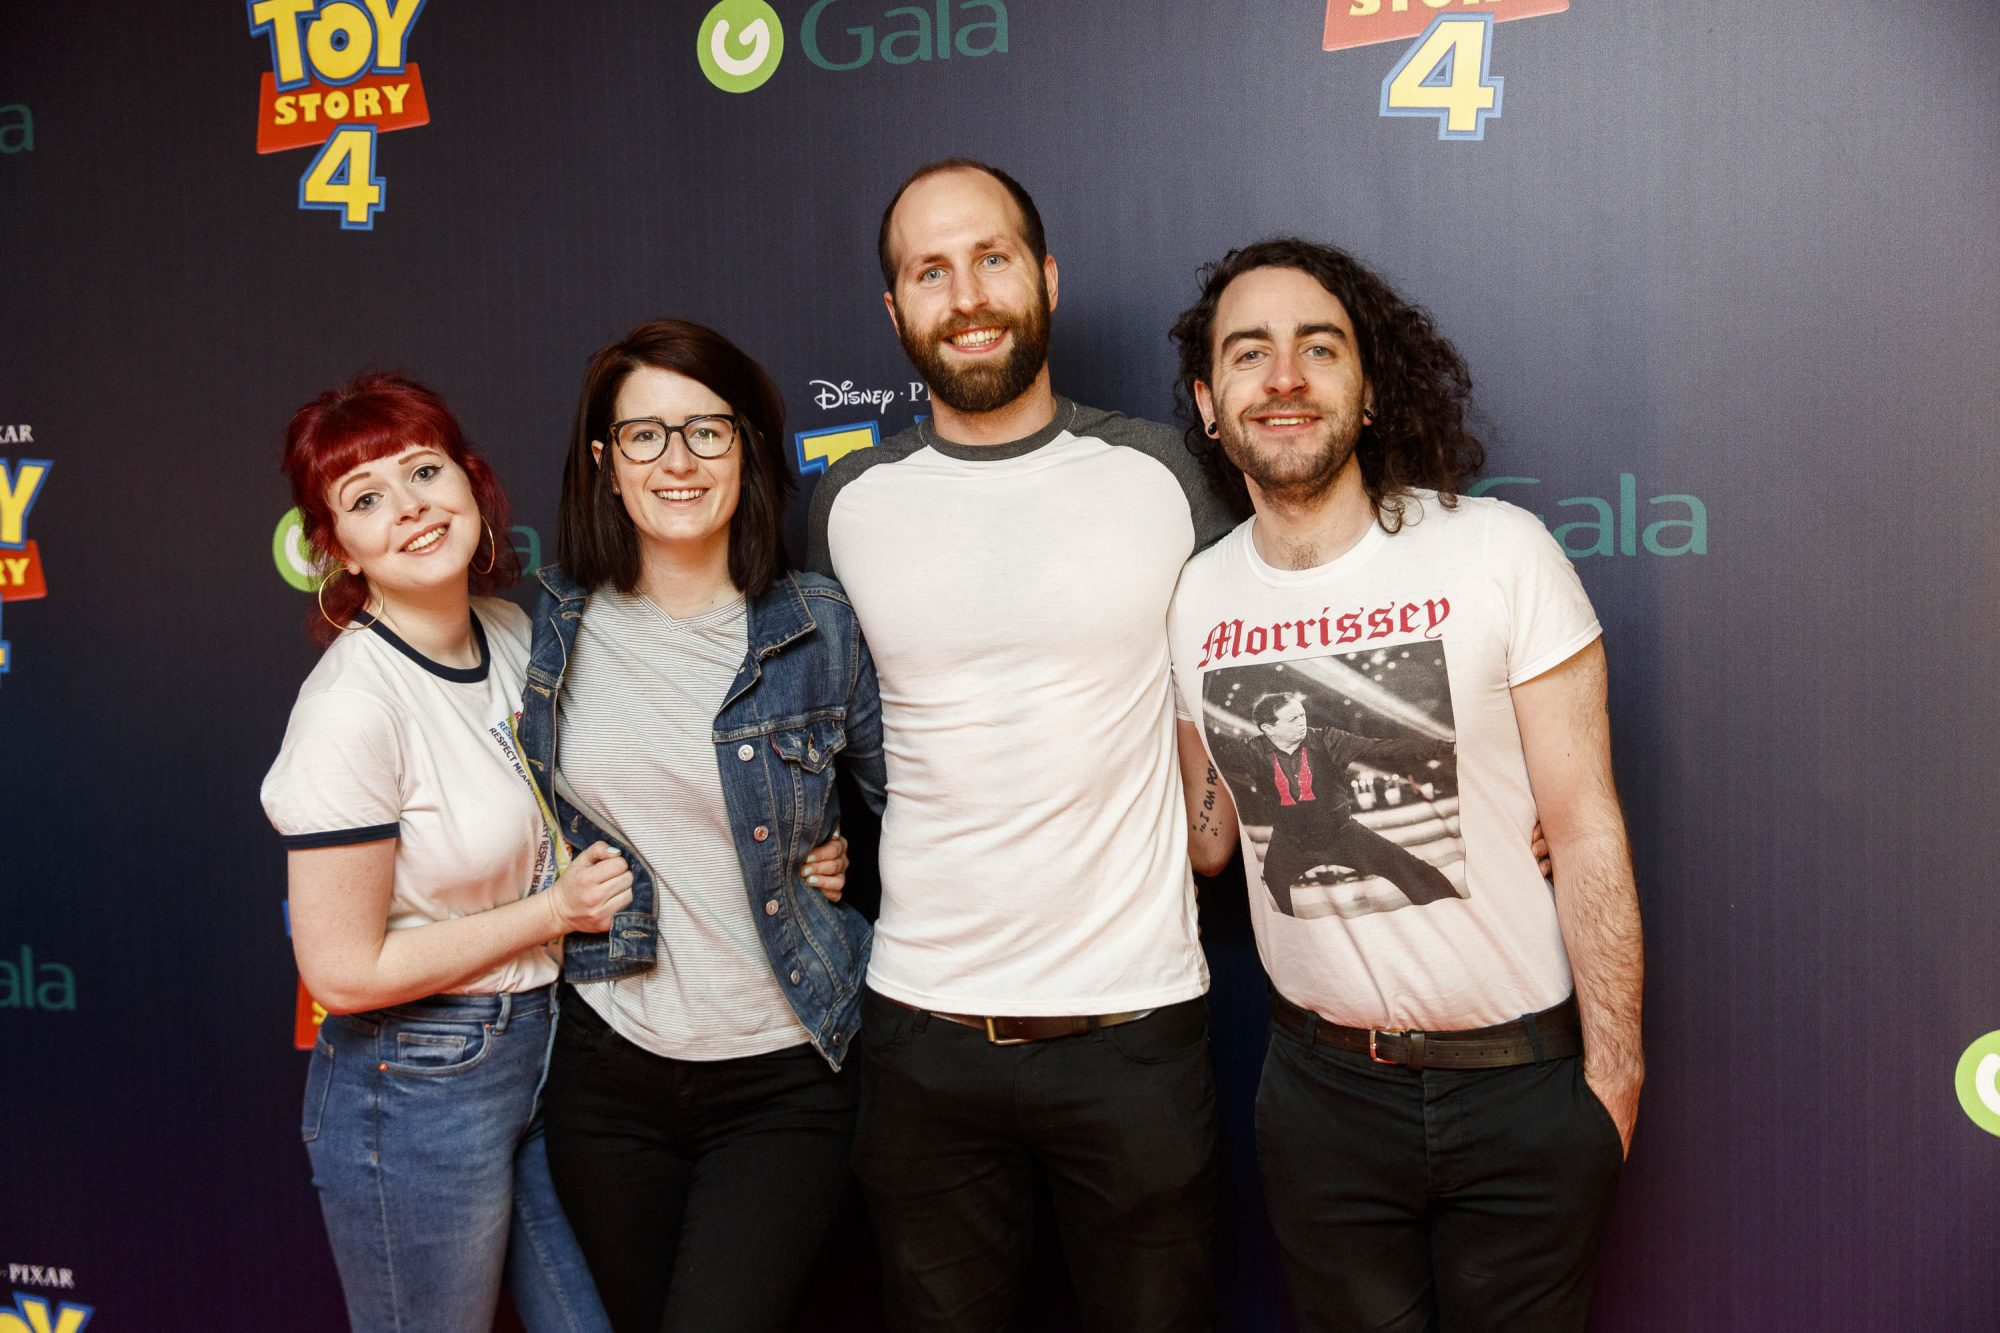 Lolsy Byrne, Kelly Hunnings and Aidan Green and Dave Reilly pictured at the special event screening of Disney Pixar's TOY STORY 4 in the Light House Cinema Dublin. Picture: Andres Poveda